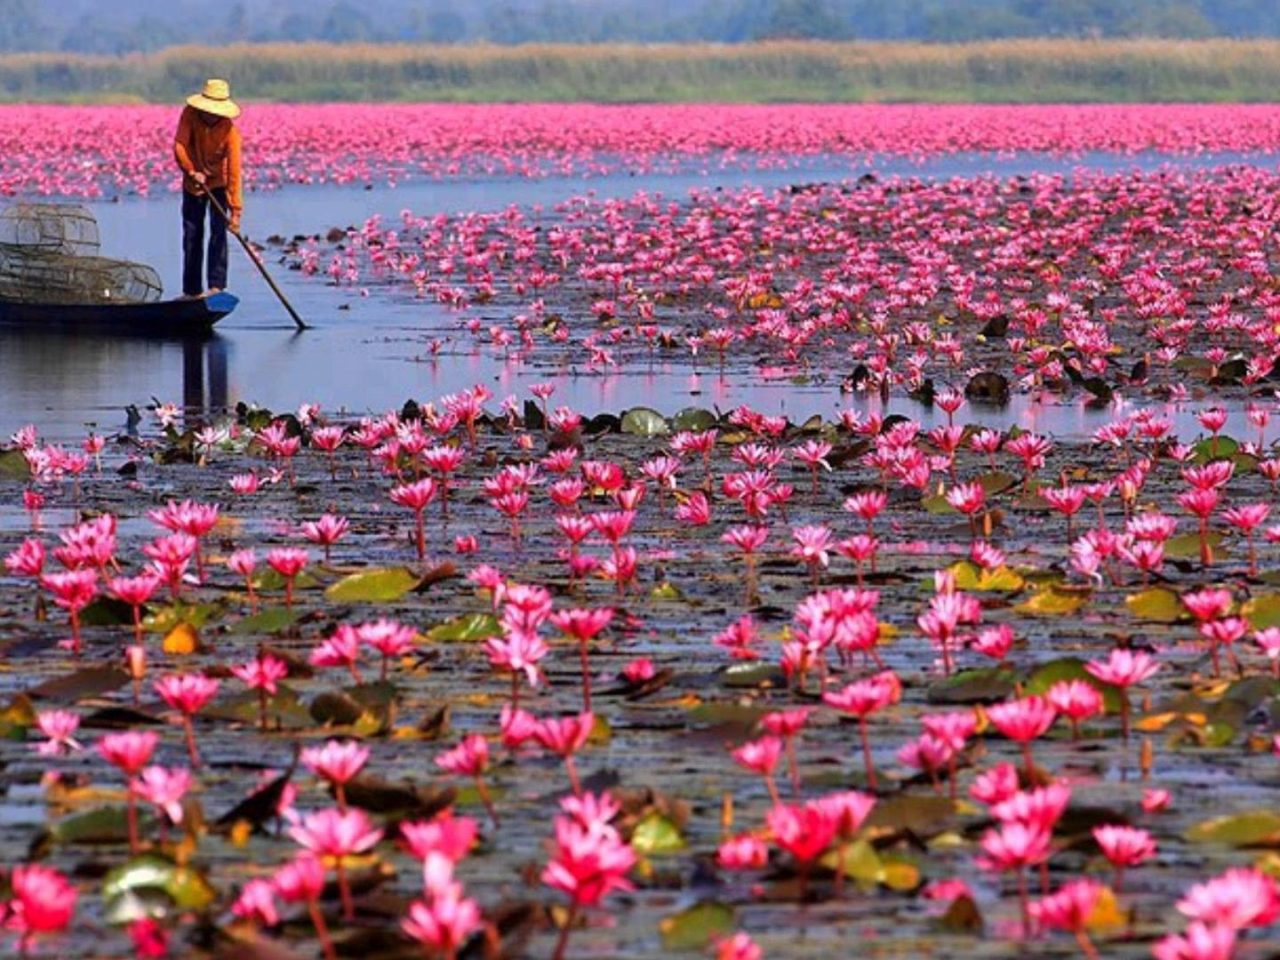 Wallpaper Full Color Hd Red Lotus Lake Color Pink Lotus Udon Thani Talay Bua Dang